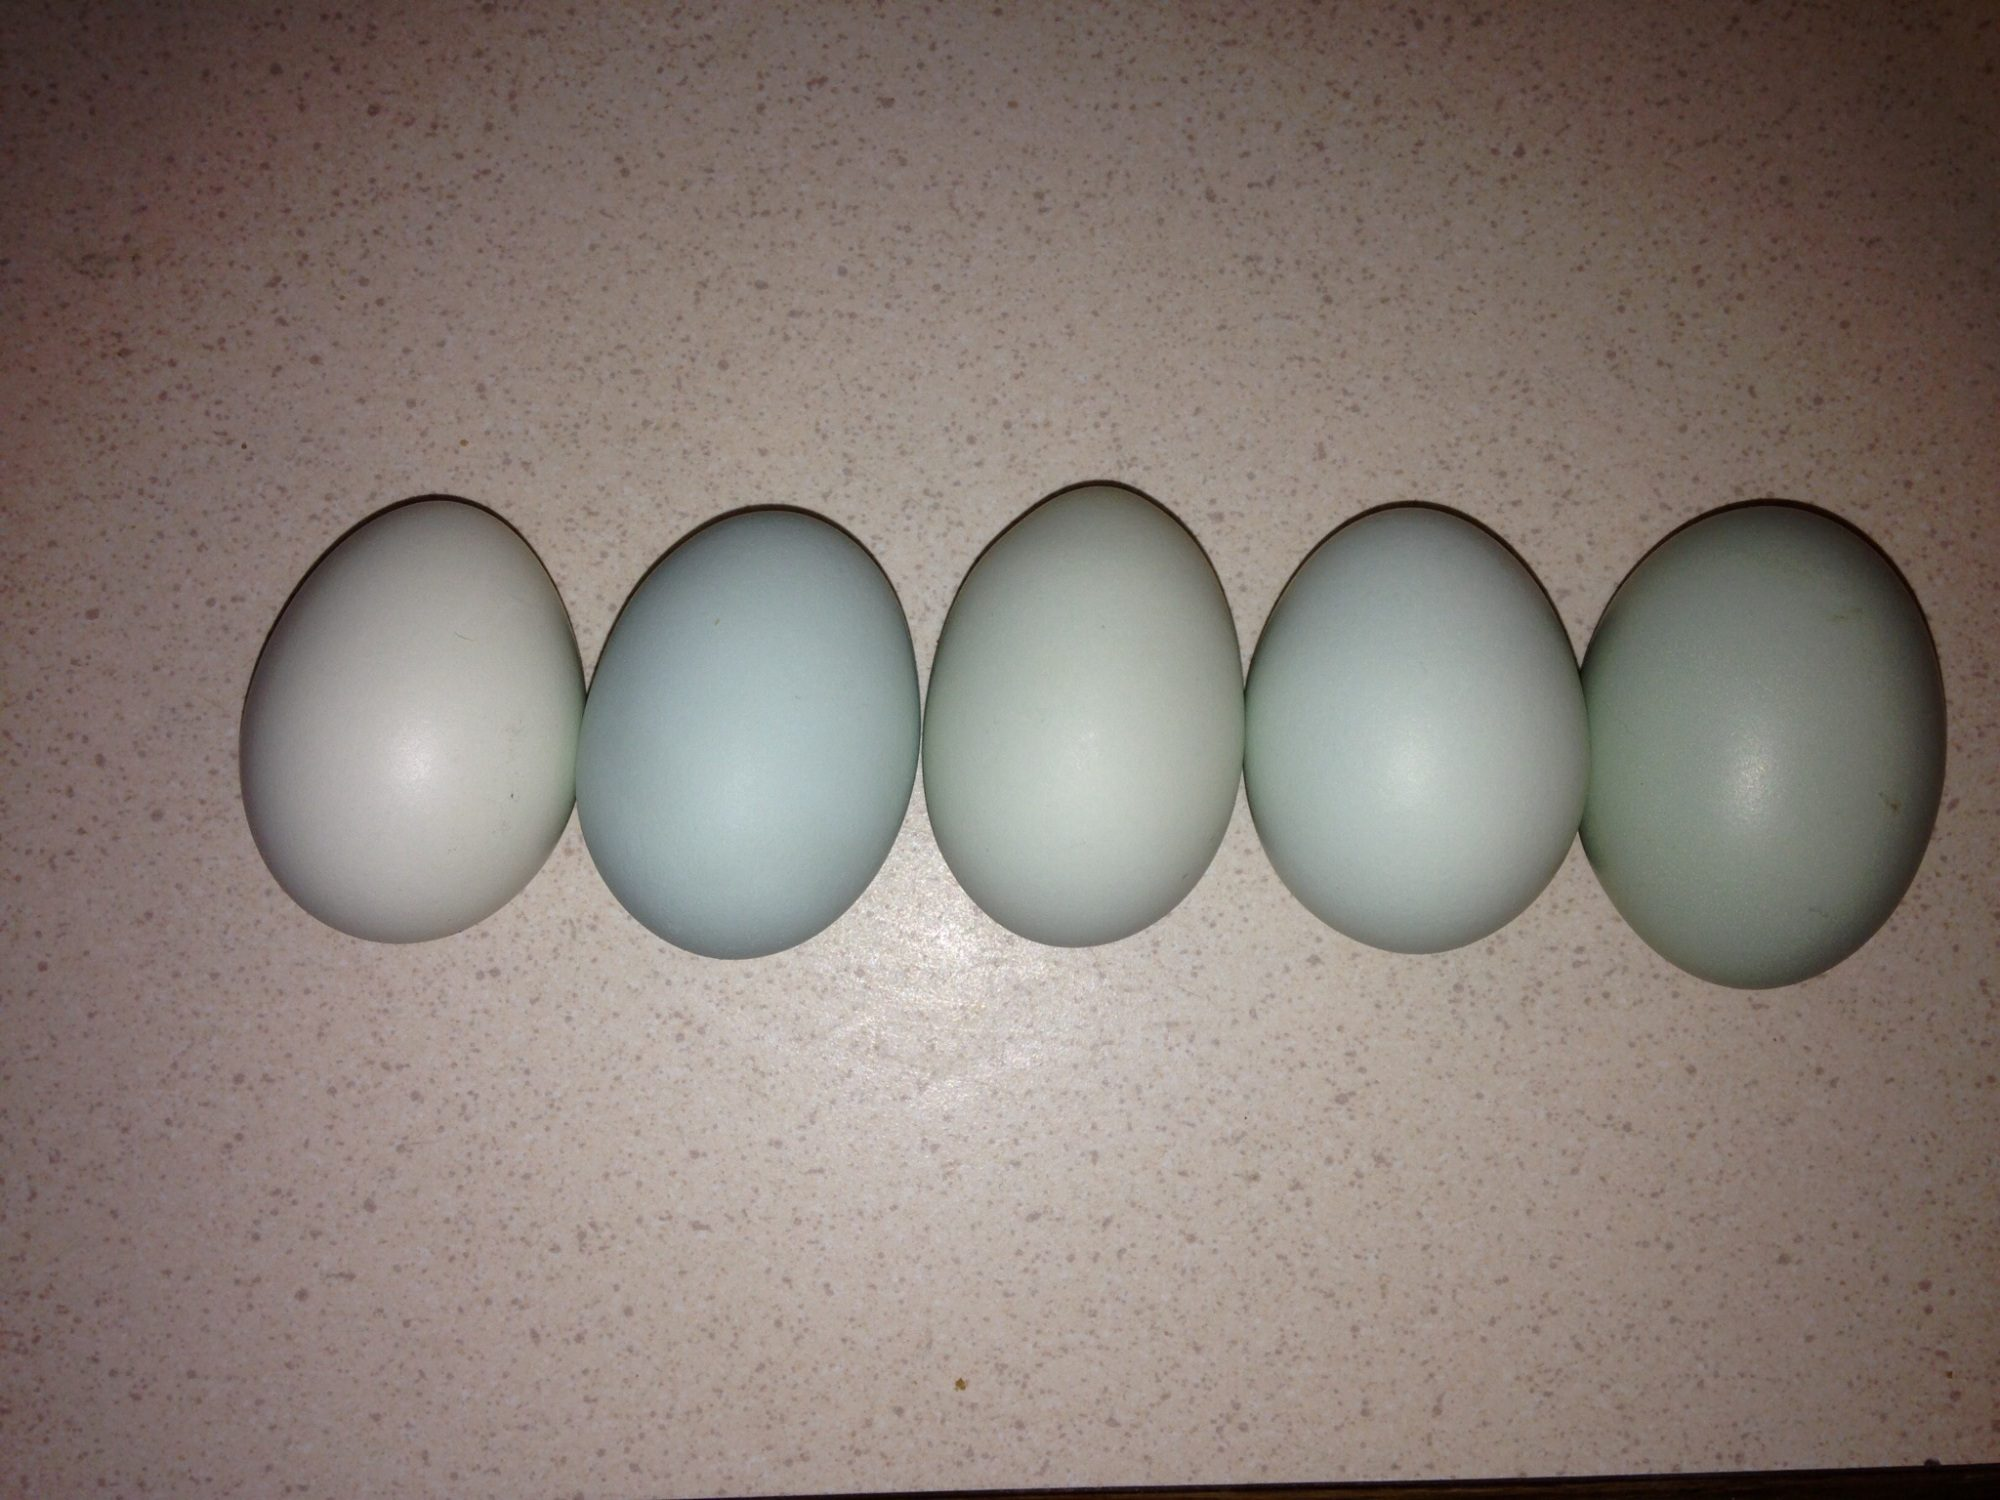 5 blue eggs from our 5 EEHens